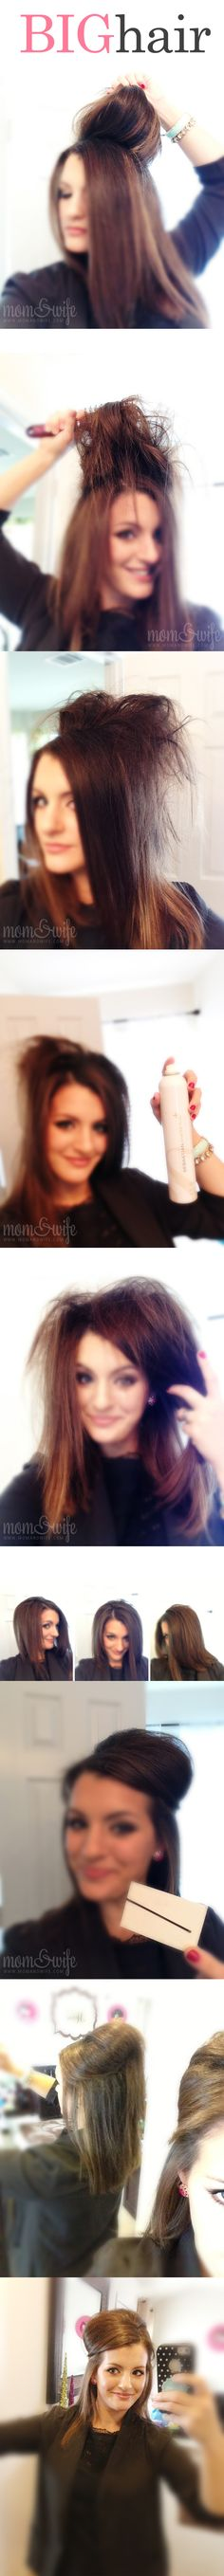 "How to 'Poof"" Your Hair - MomAndWife.com"